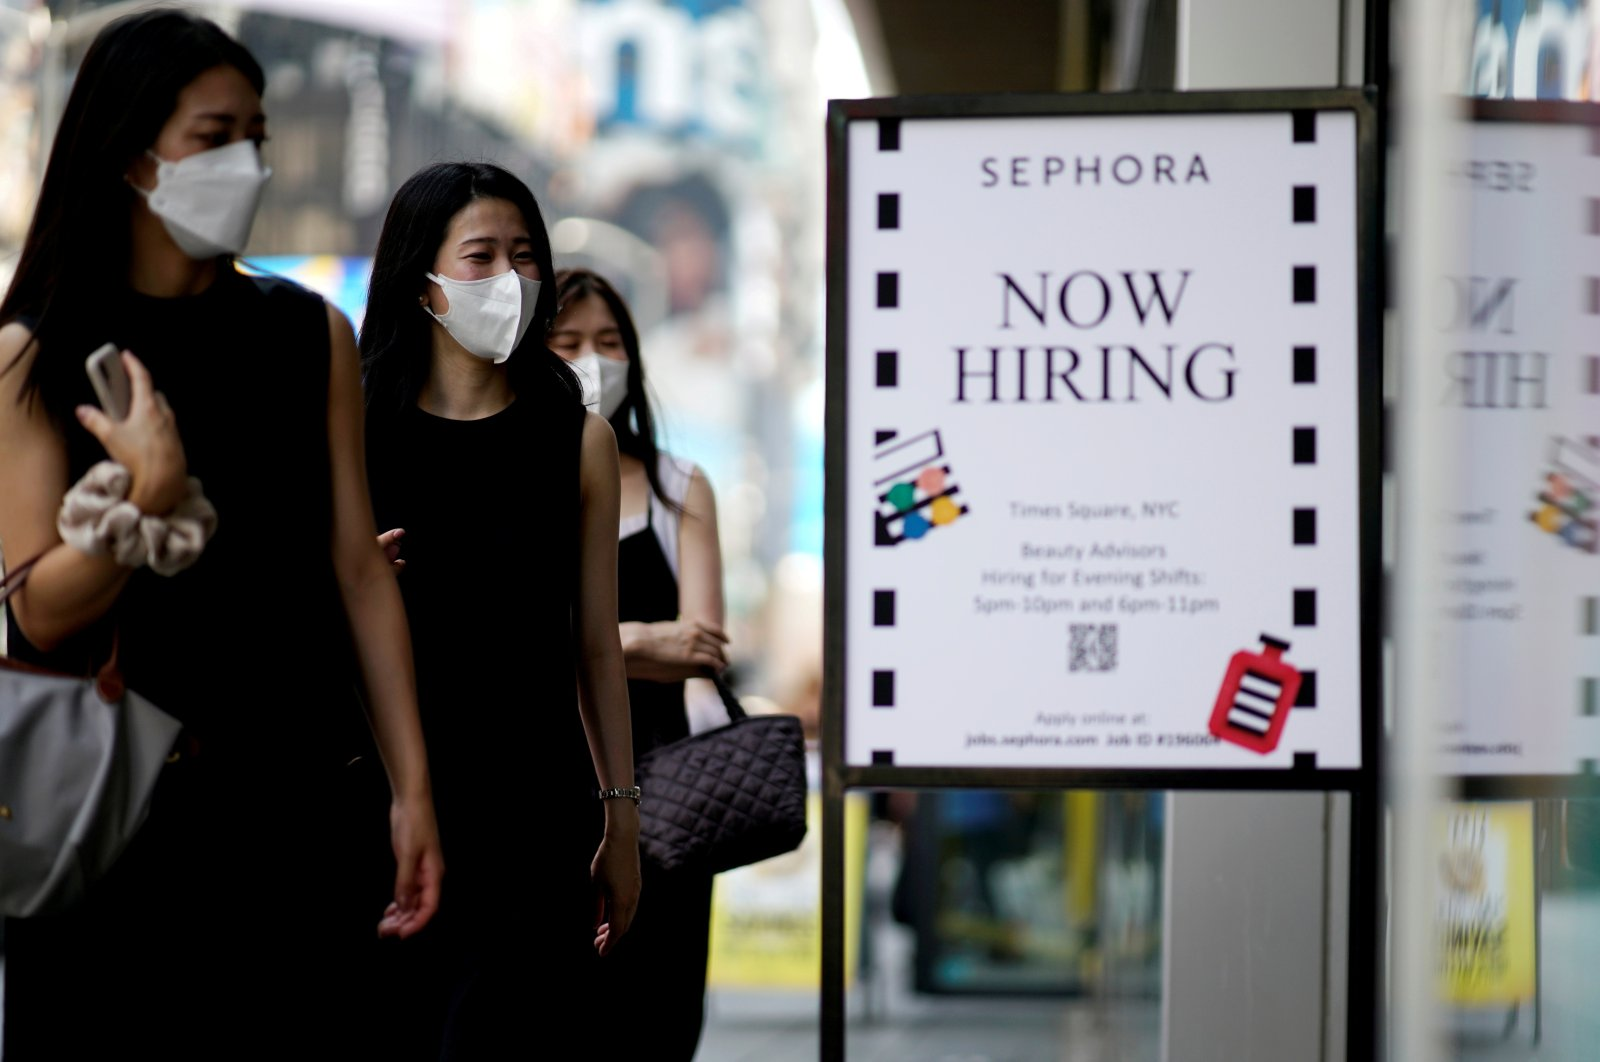 A sign advertising job openings is seen while people walk into a store in New York City, New York, U.S., Aug. 6, 2021. (Reuters Photo)